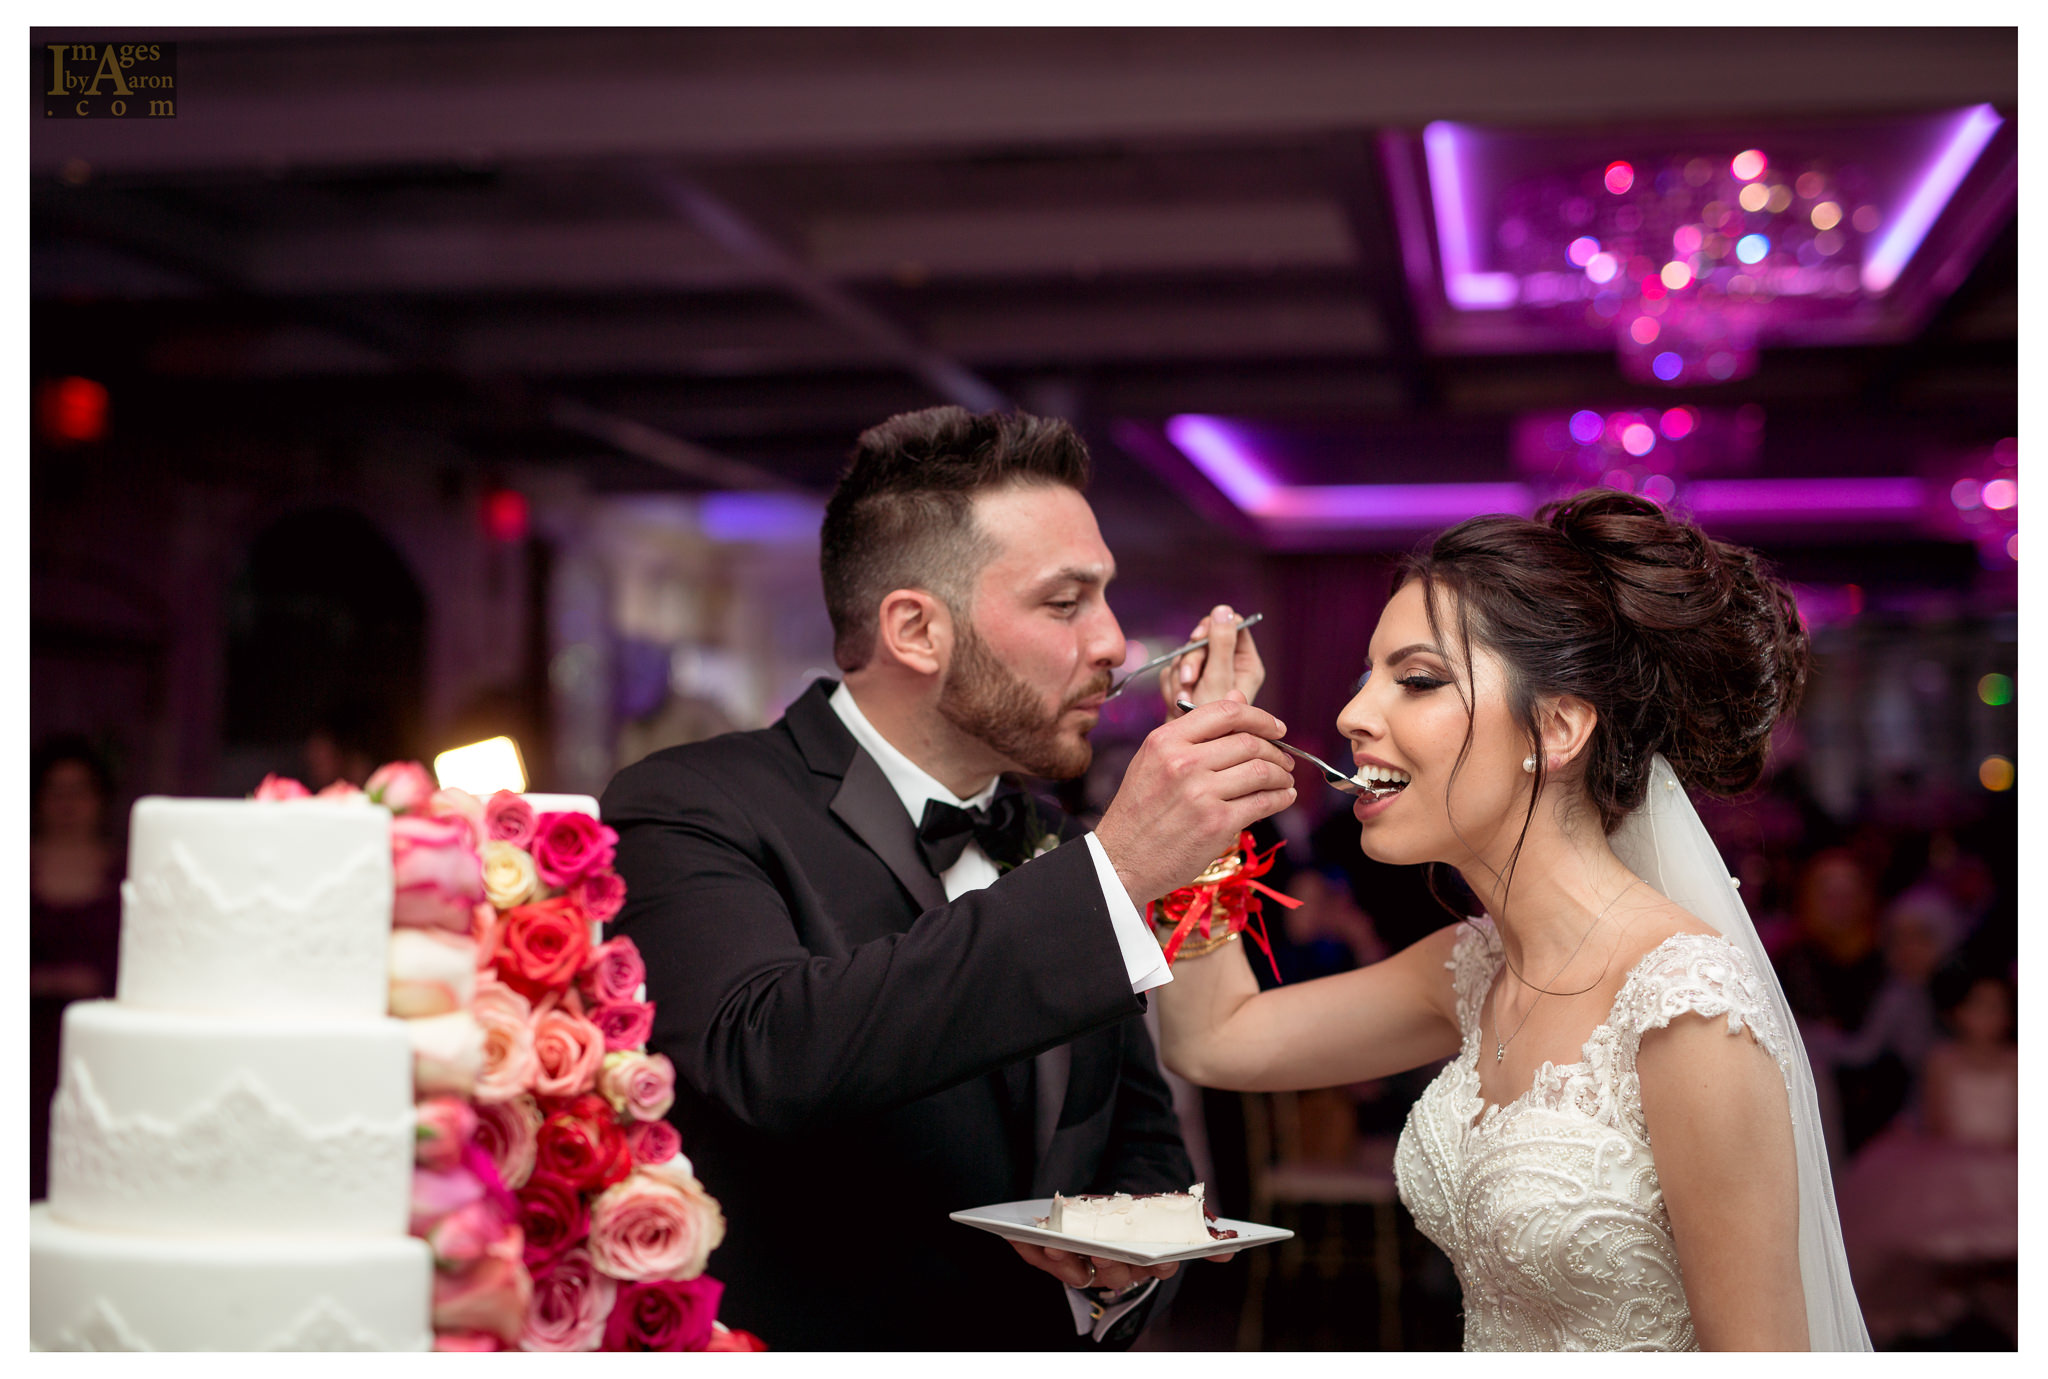 Gokce Turkish Wedding Reception New York Photographer Wedding Photography The Royal Manor-32.jpg